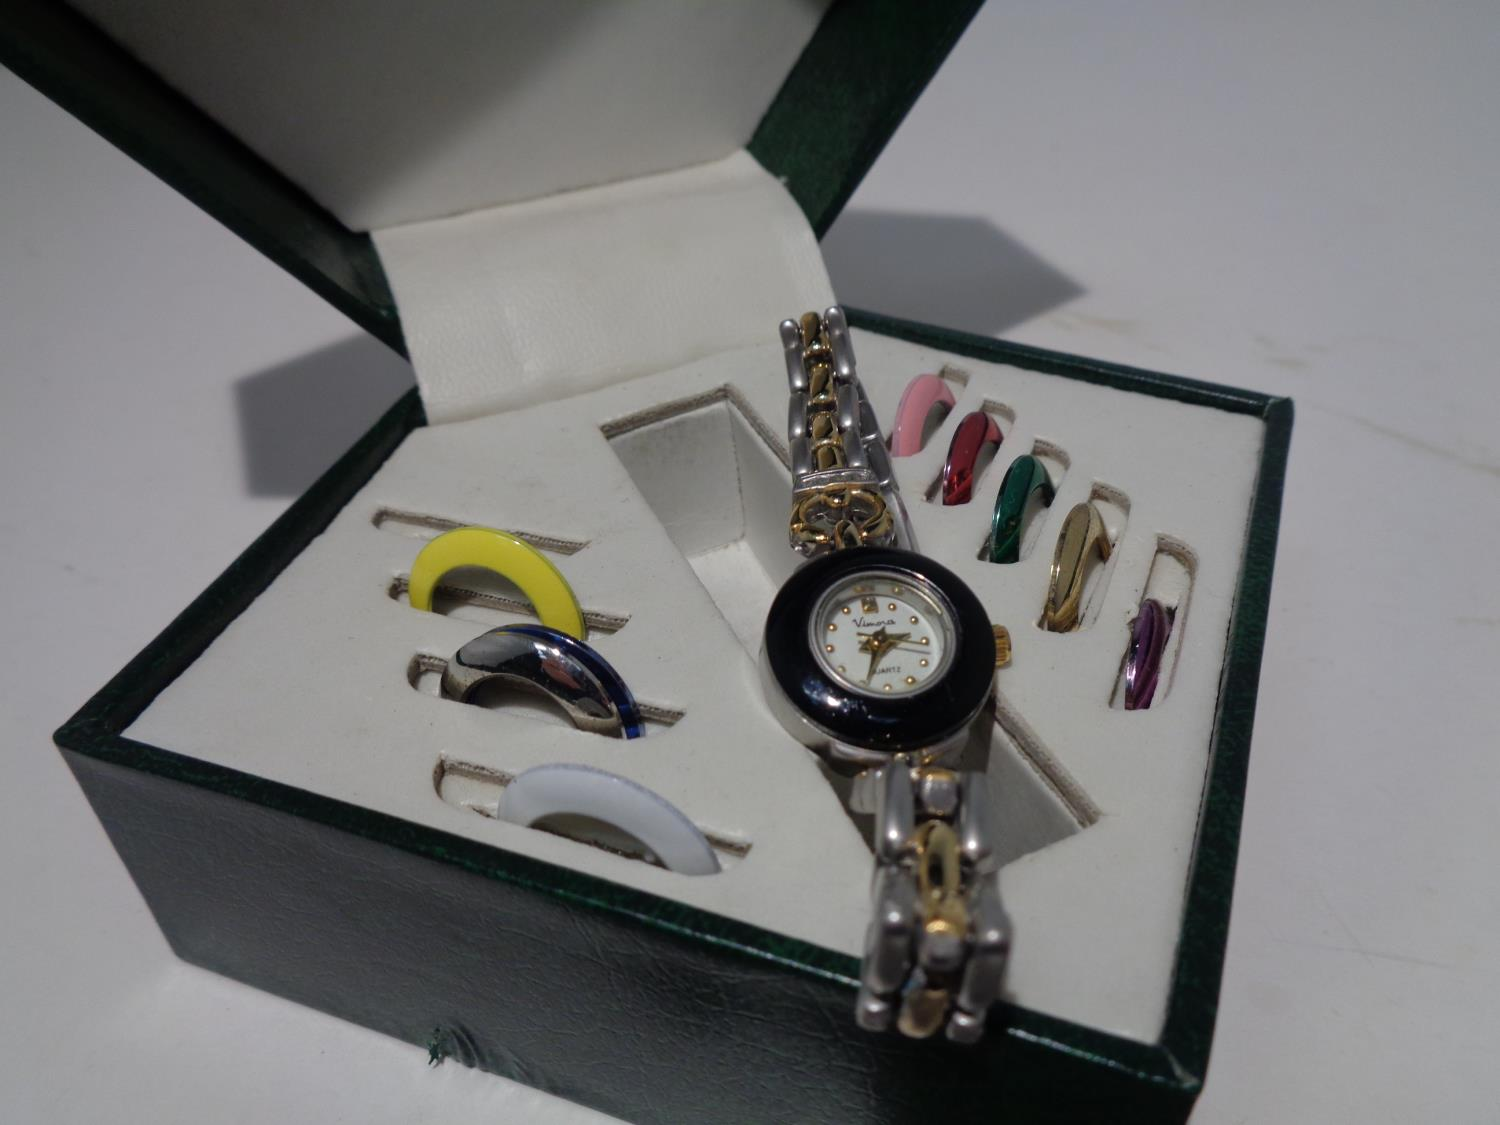 A VIMORA BOXED WATCH WITH COLOURED INTERCHANGEABLE WATCH FACE SURROUNDINGS - Image 3 of 6